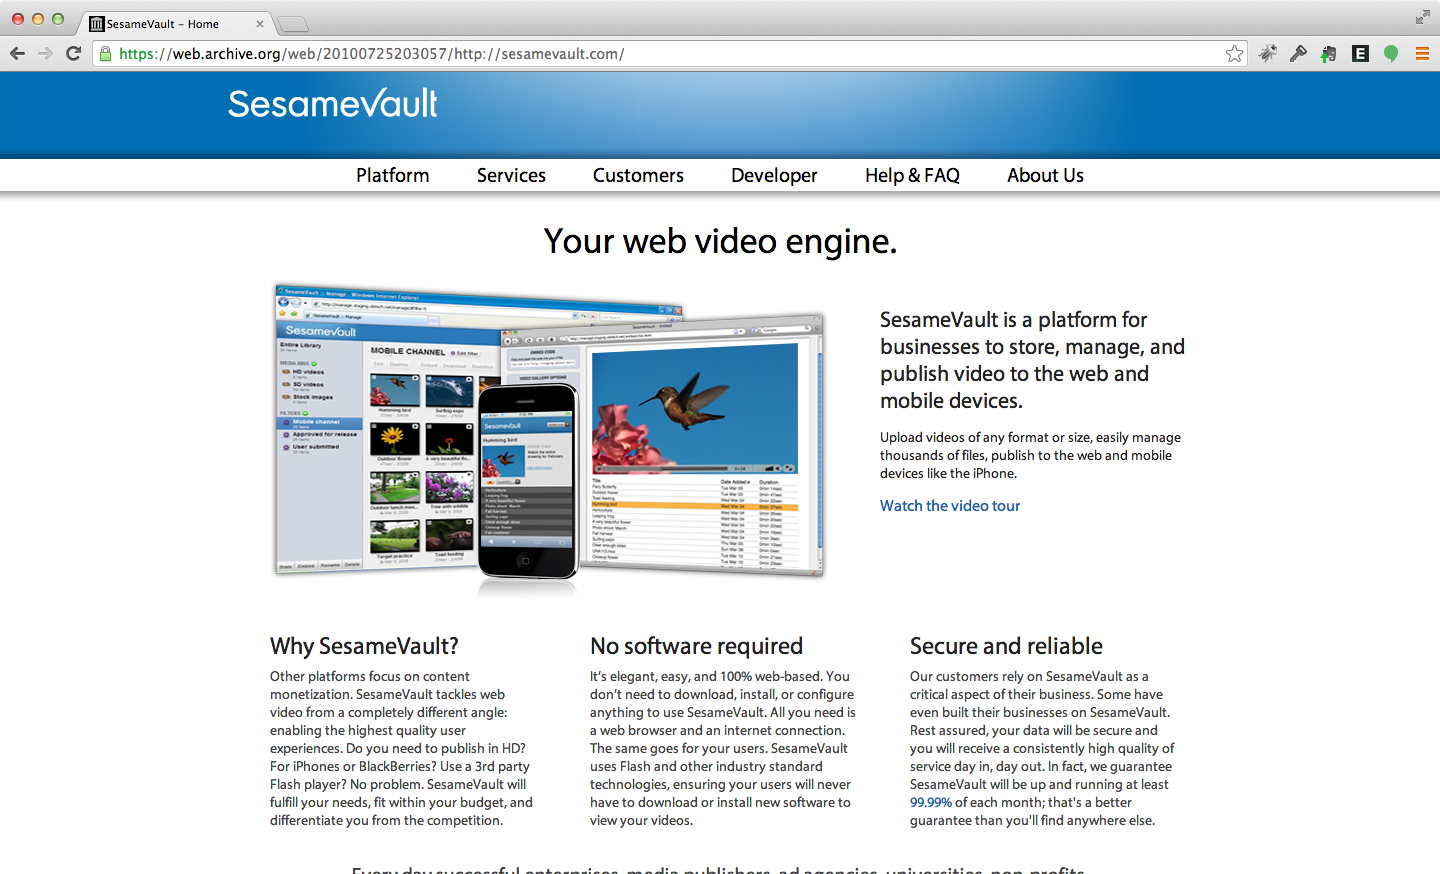 SesameVault - Web video storage, management, and streaming tools.